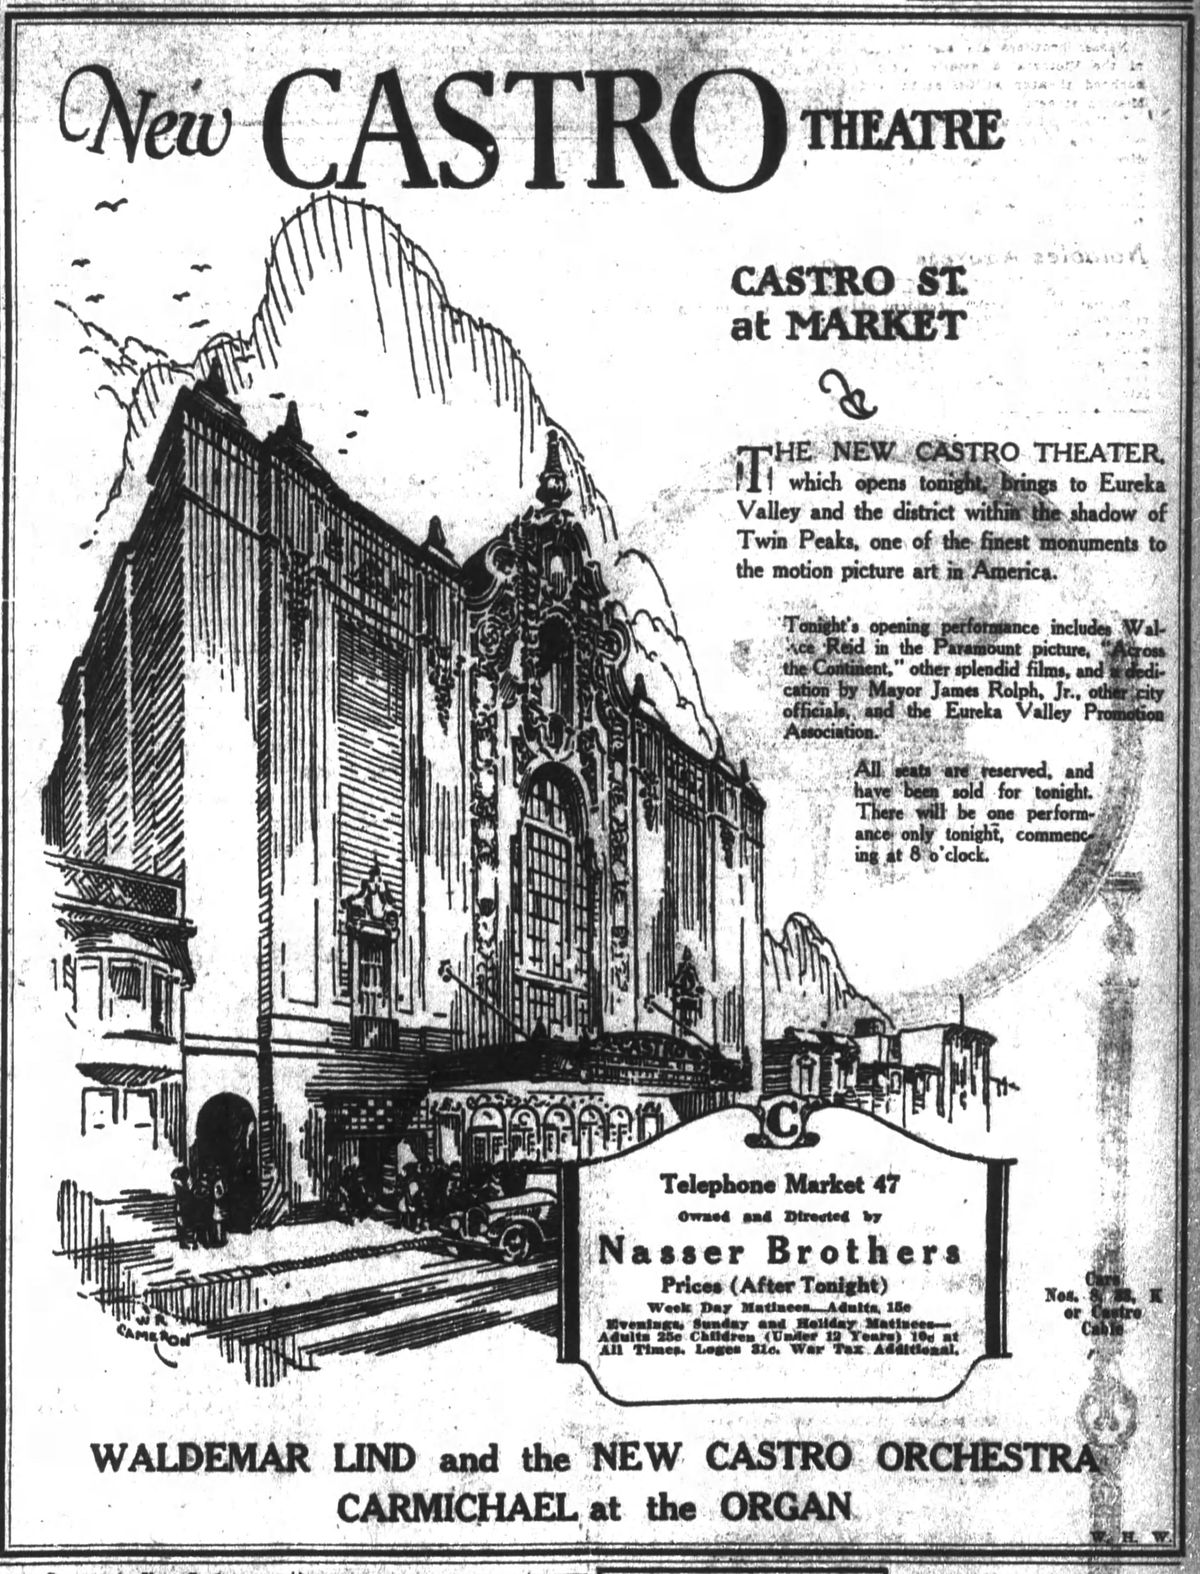 June 22, 1922 ad in the San Francisco Chronicle.